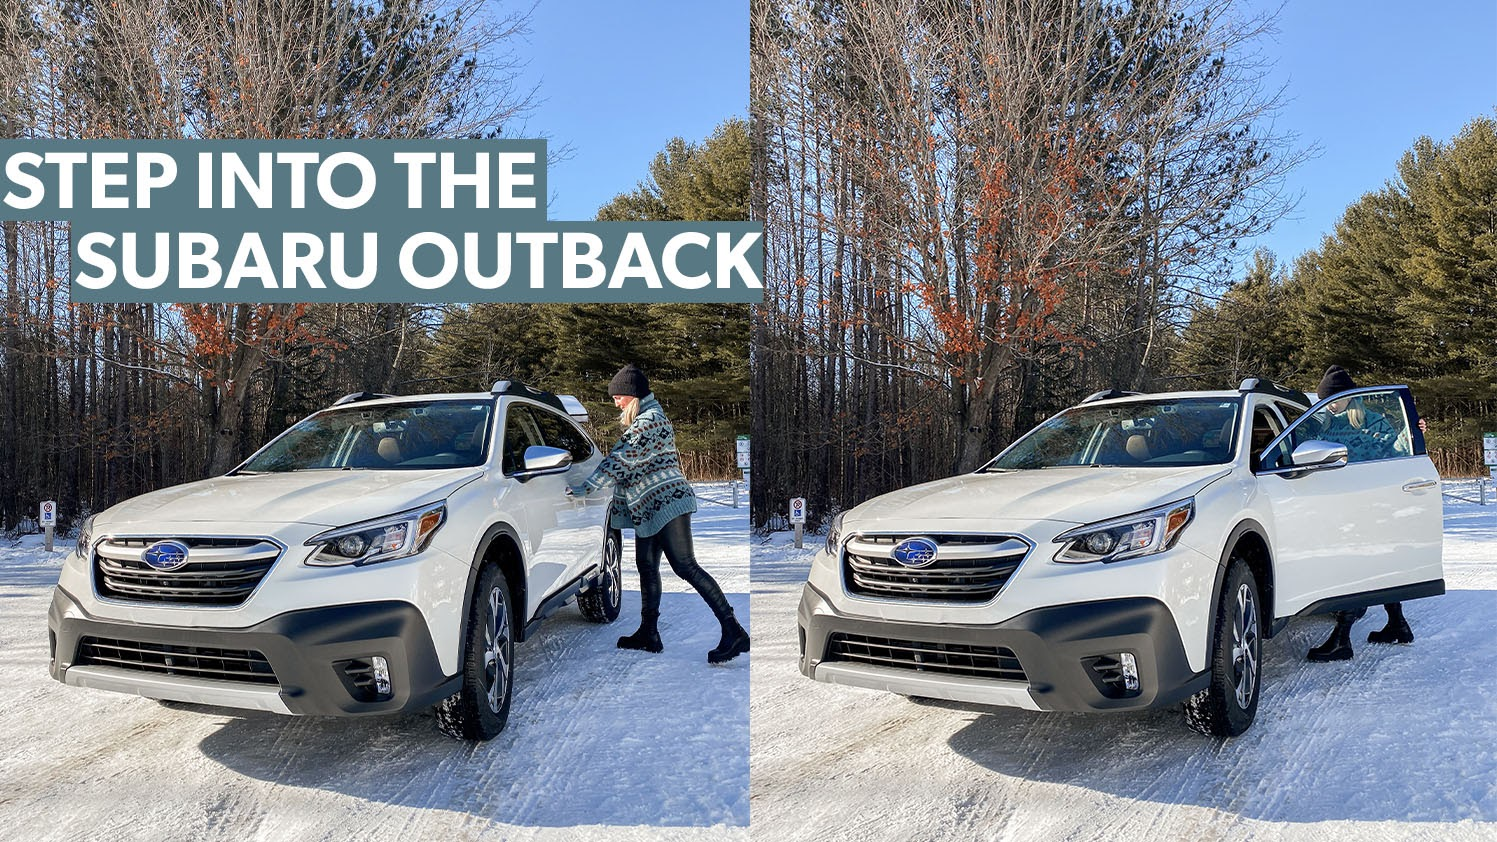 Subaru Outback Review